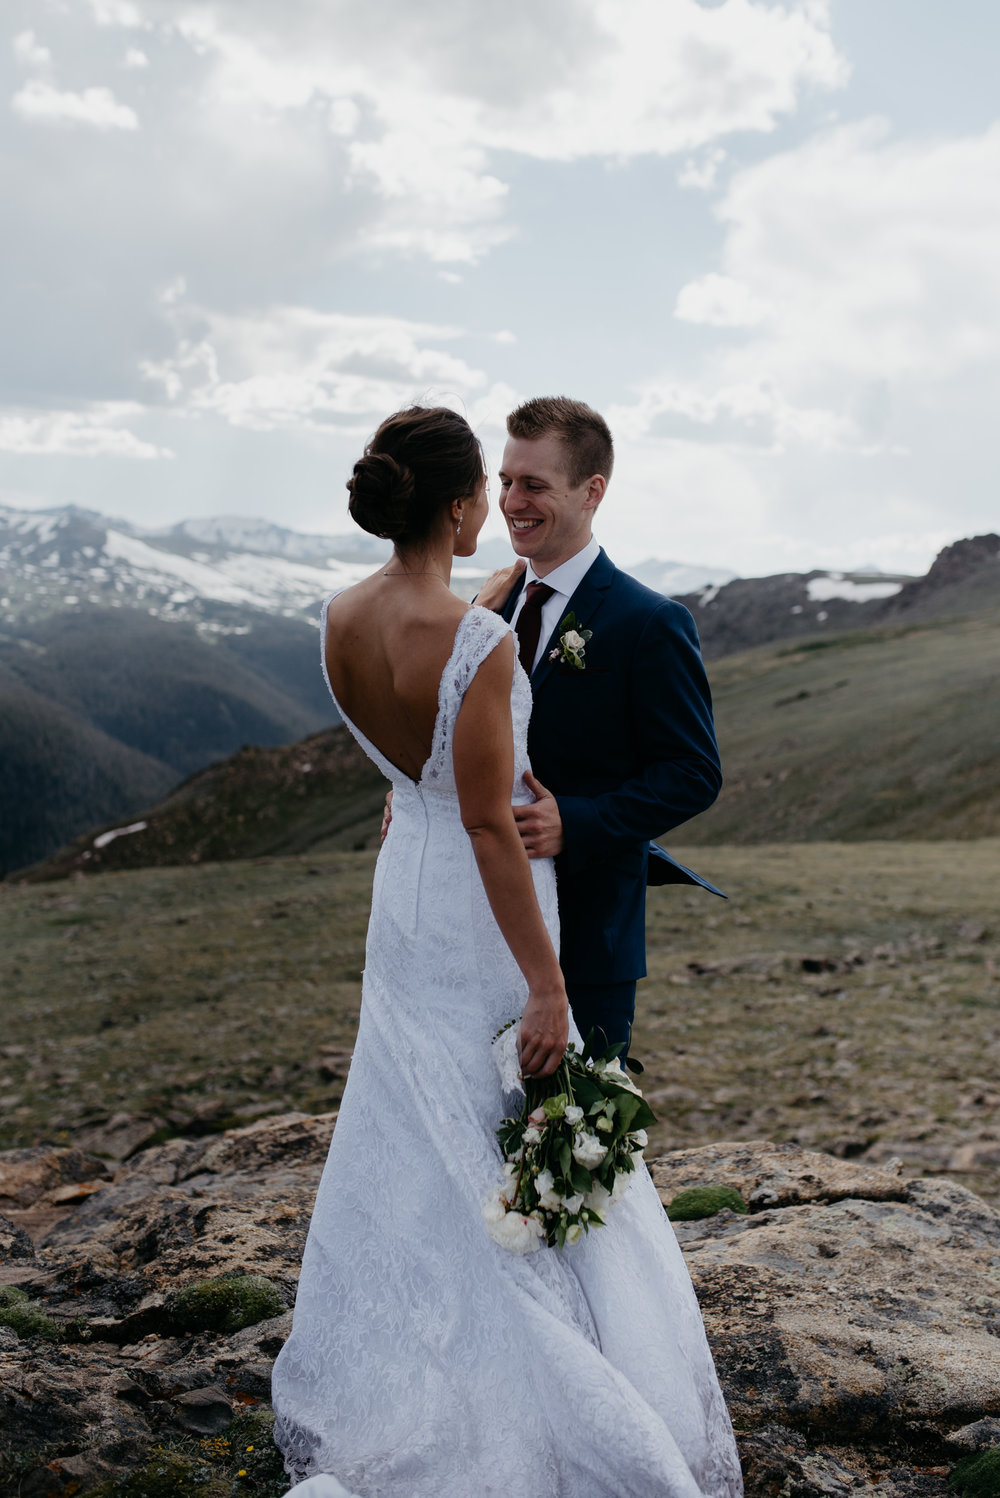 Colorado based wedding and elopement photographer.